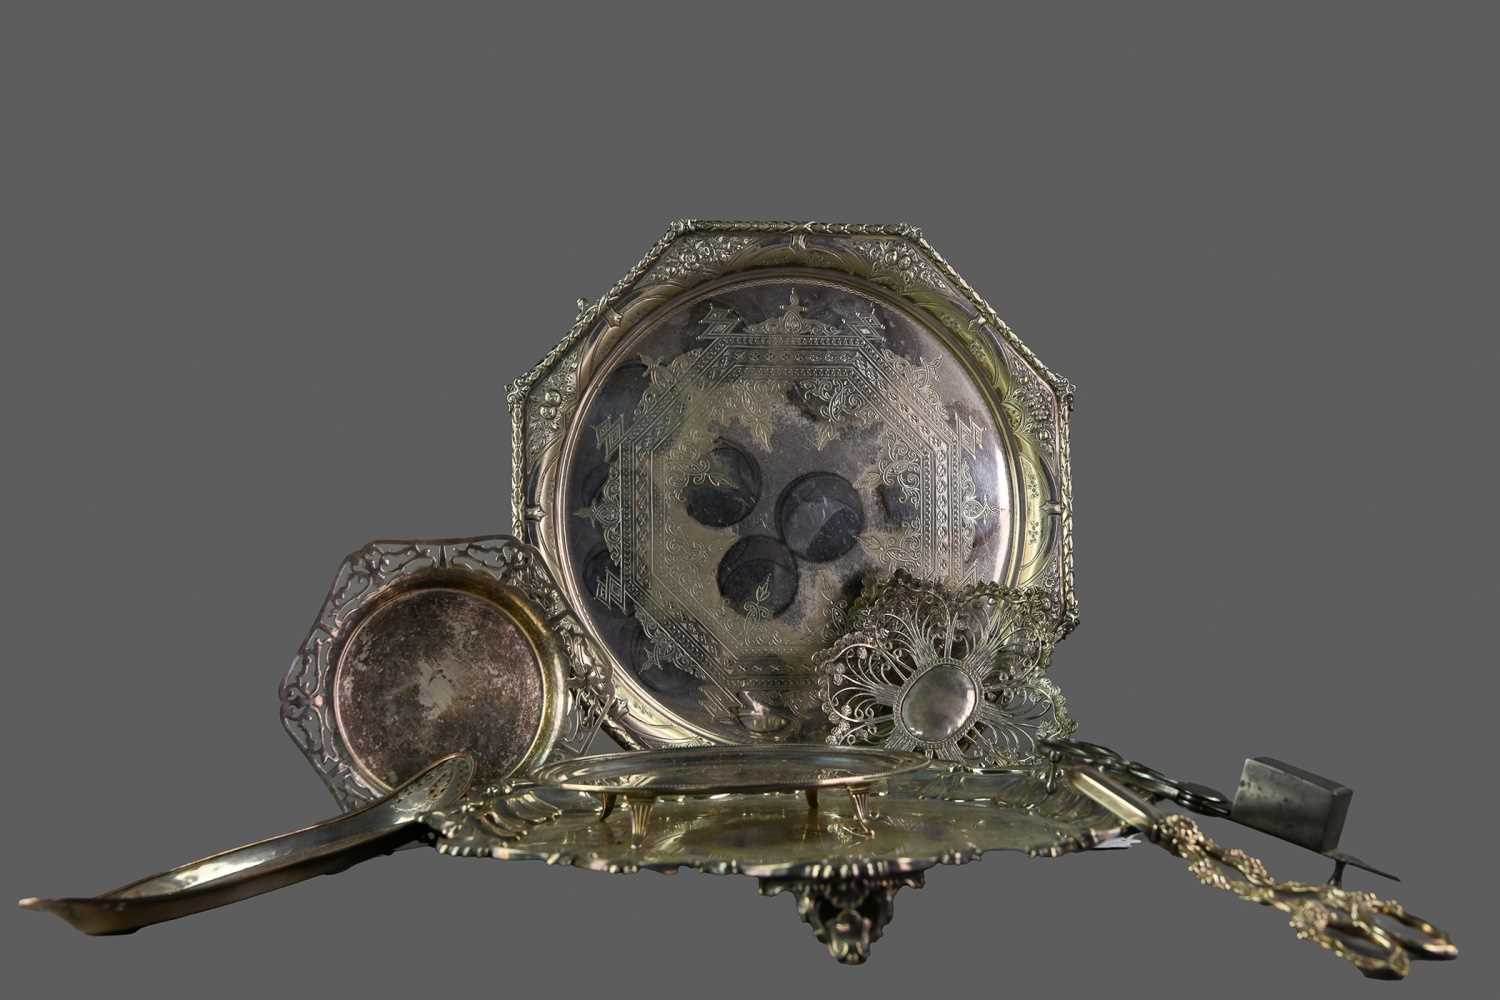 Lot 86 - A LATE VICTORIAN SILVER PLATED SALVER ALONG WITH OTHER PLATED WARE